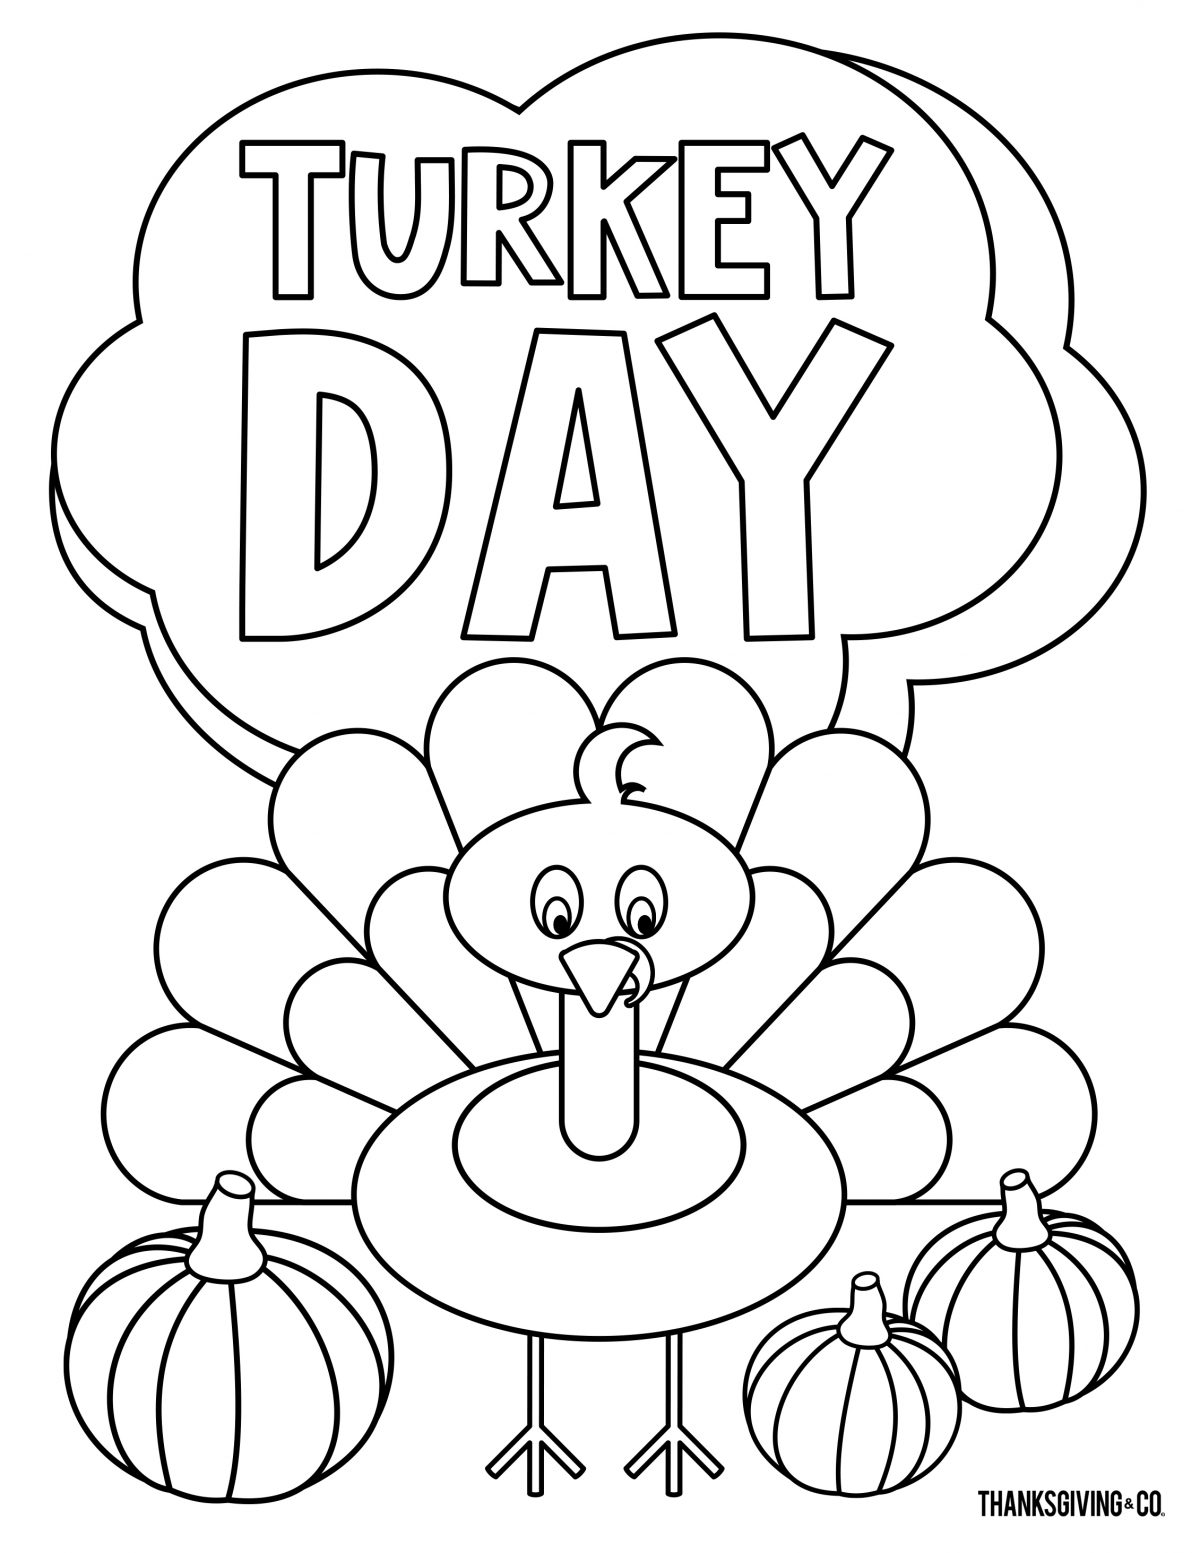 7 Thanksgiving coloring pages you can print